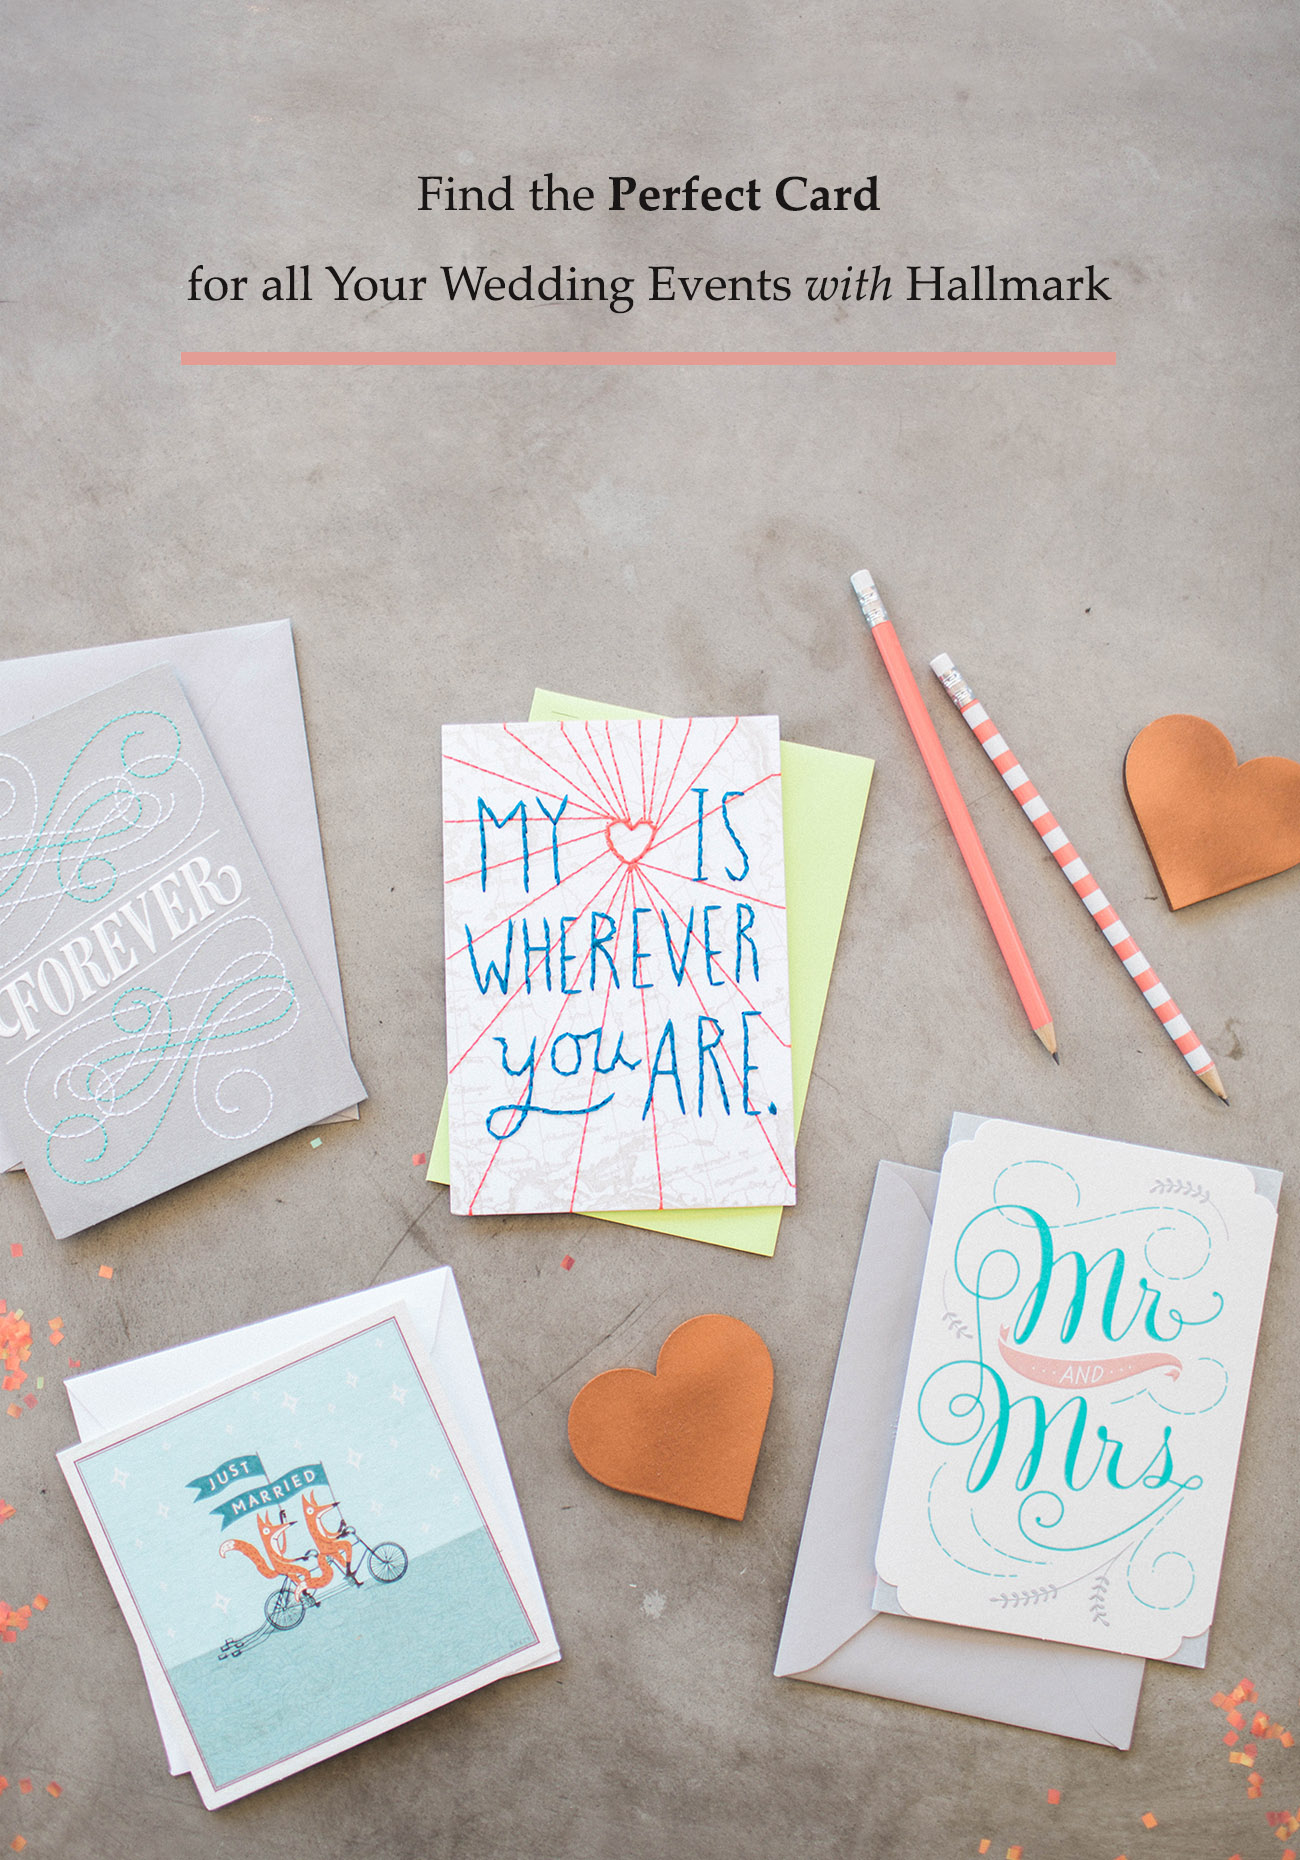 Hallmark Cards for Wedding Events